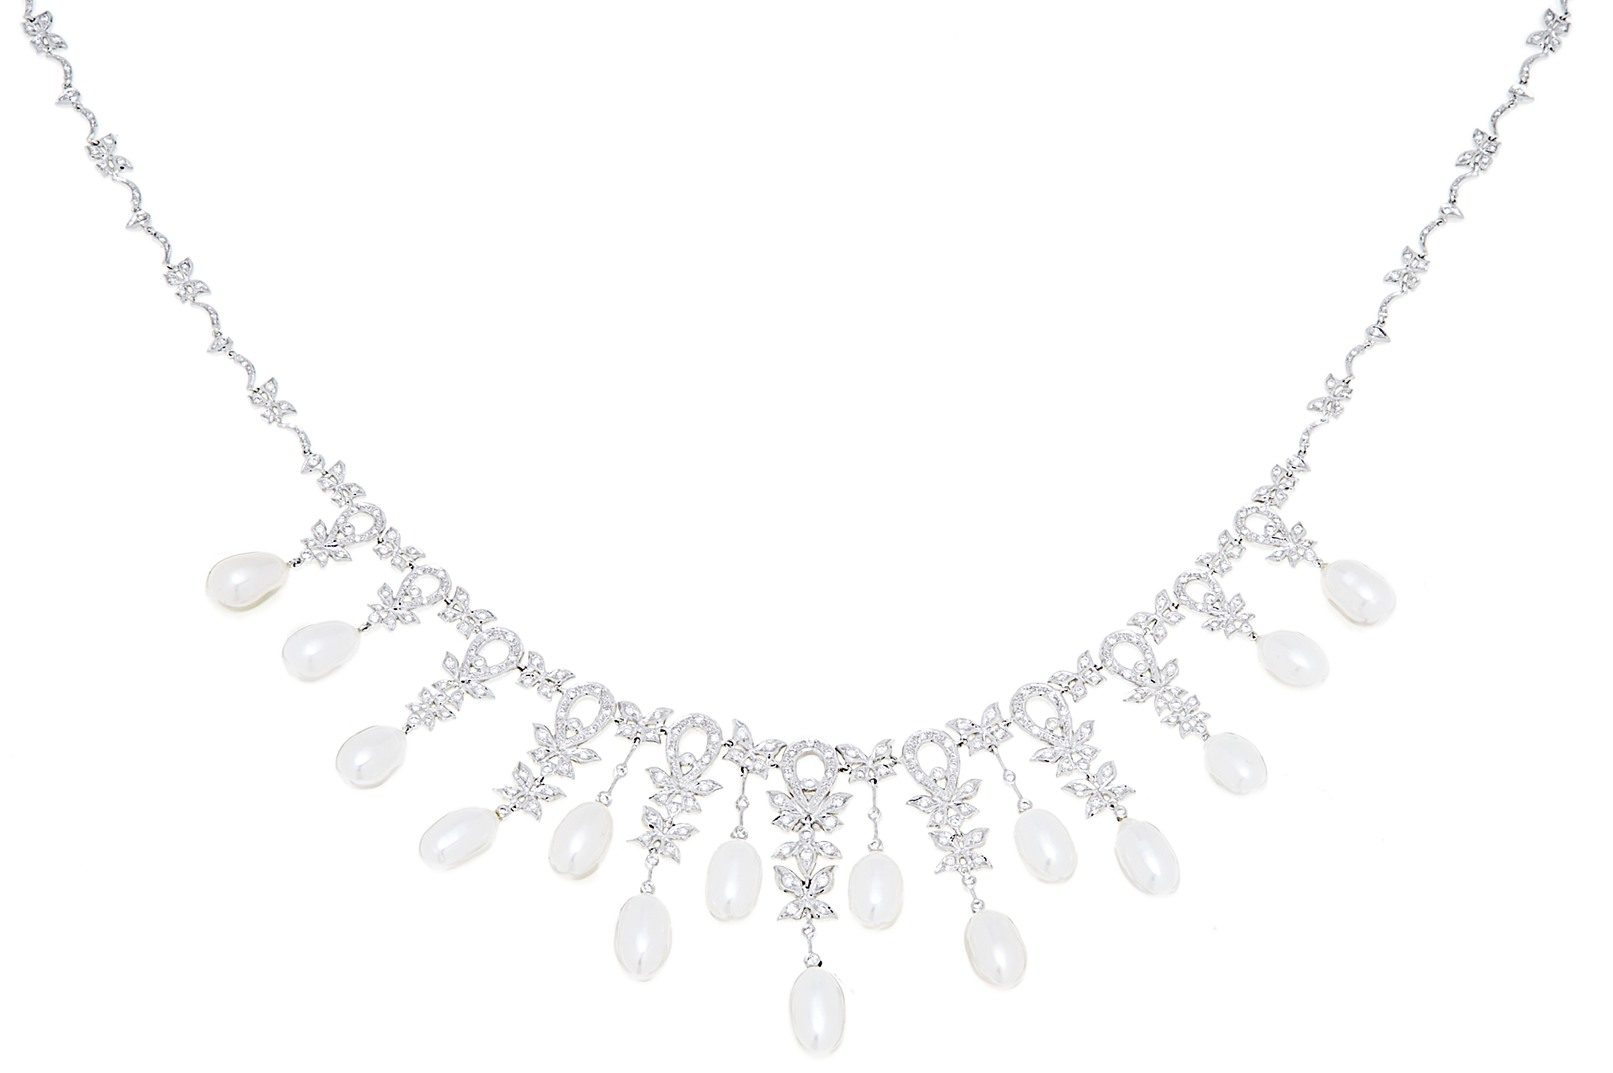 18kt white gold diamond design necklace with hanging drops of fresh water pearls